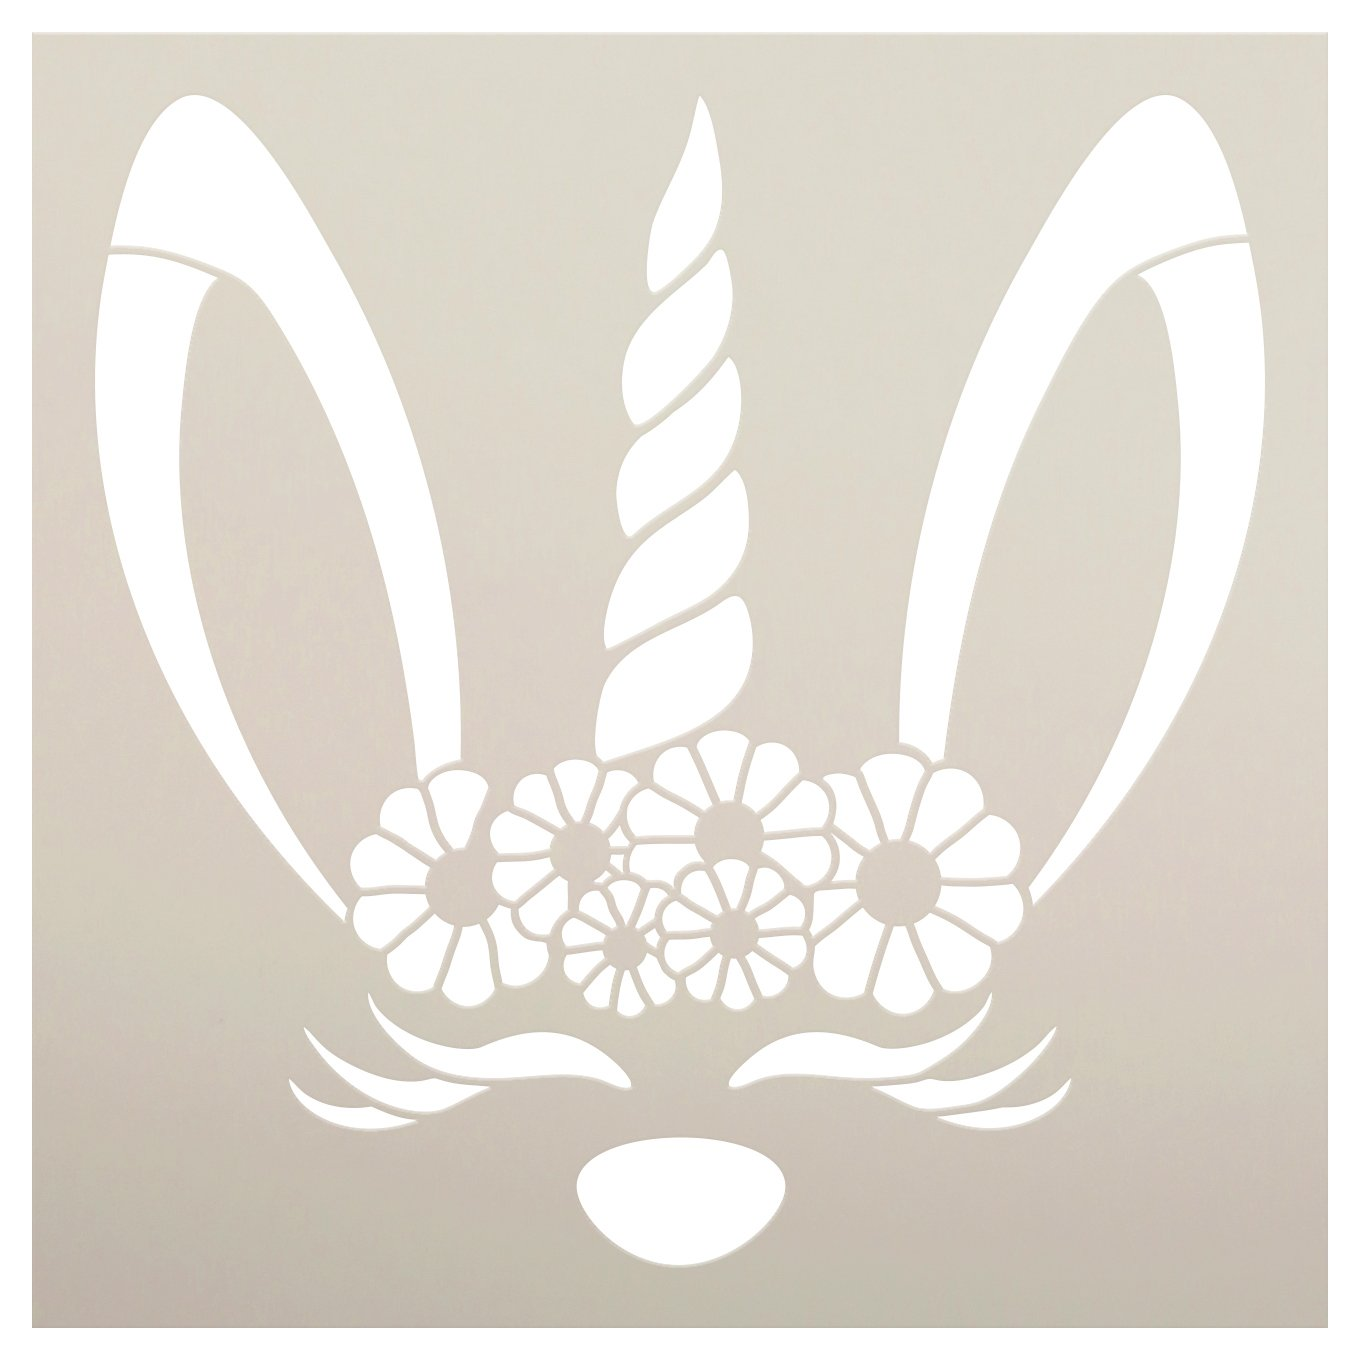 Easter Bunny Unicorn Stencil with Flower Crown by StudioR12   DIY Spring Home Decor   Craft & Paint Fun Wood Sign for Kids   Select Size